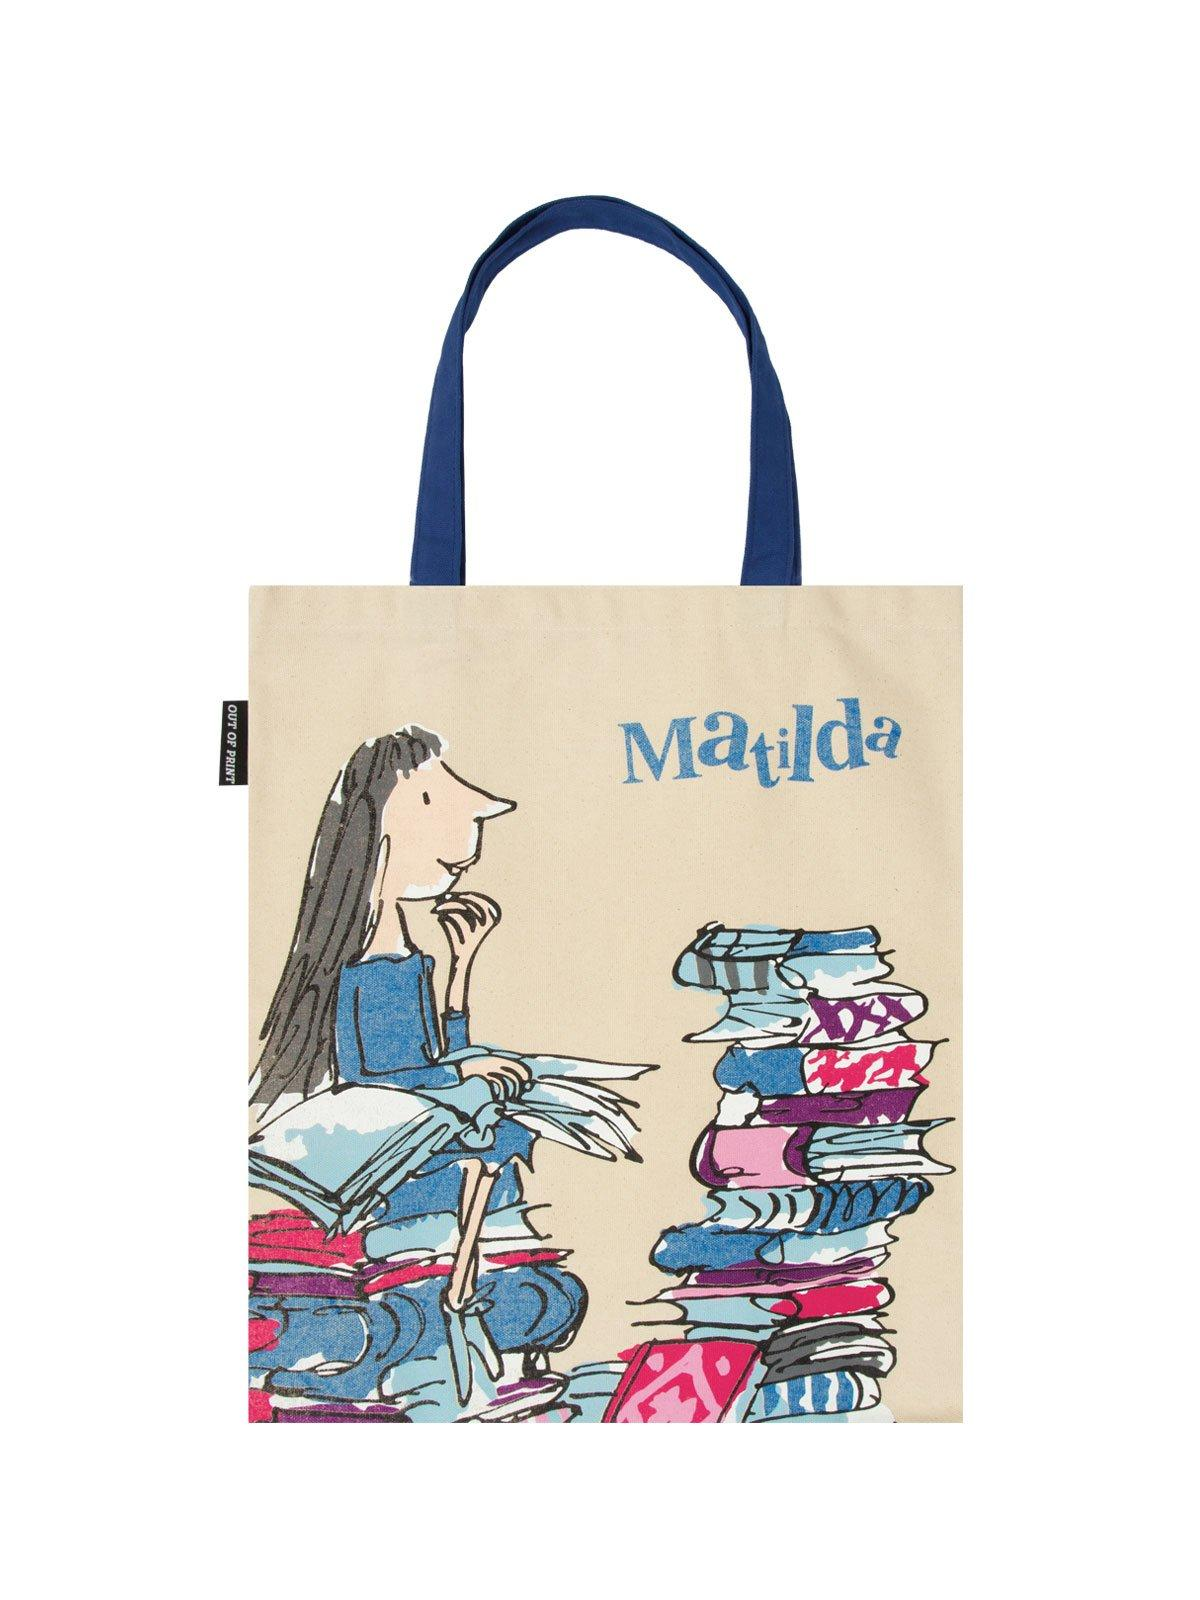 An off-white canvas tote with blue handles, featuring cover art (by Quentin Blake) from Roald Dahl's book Matilda